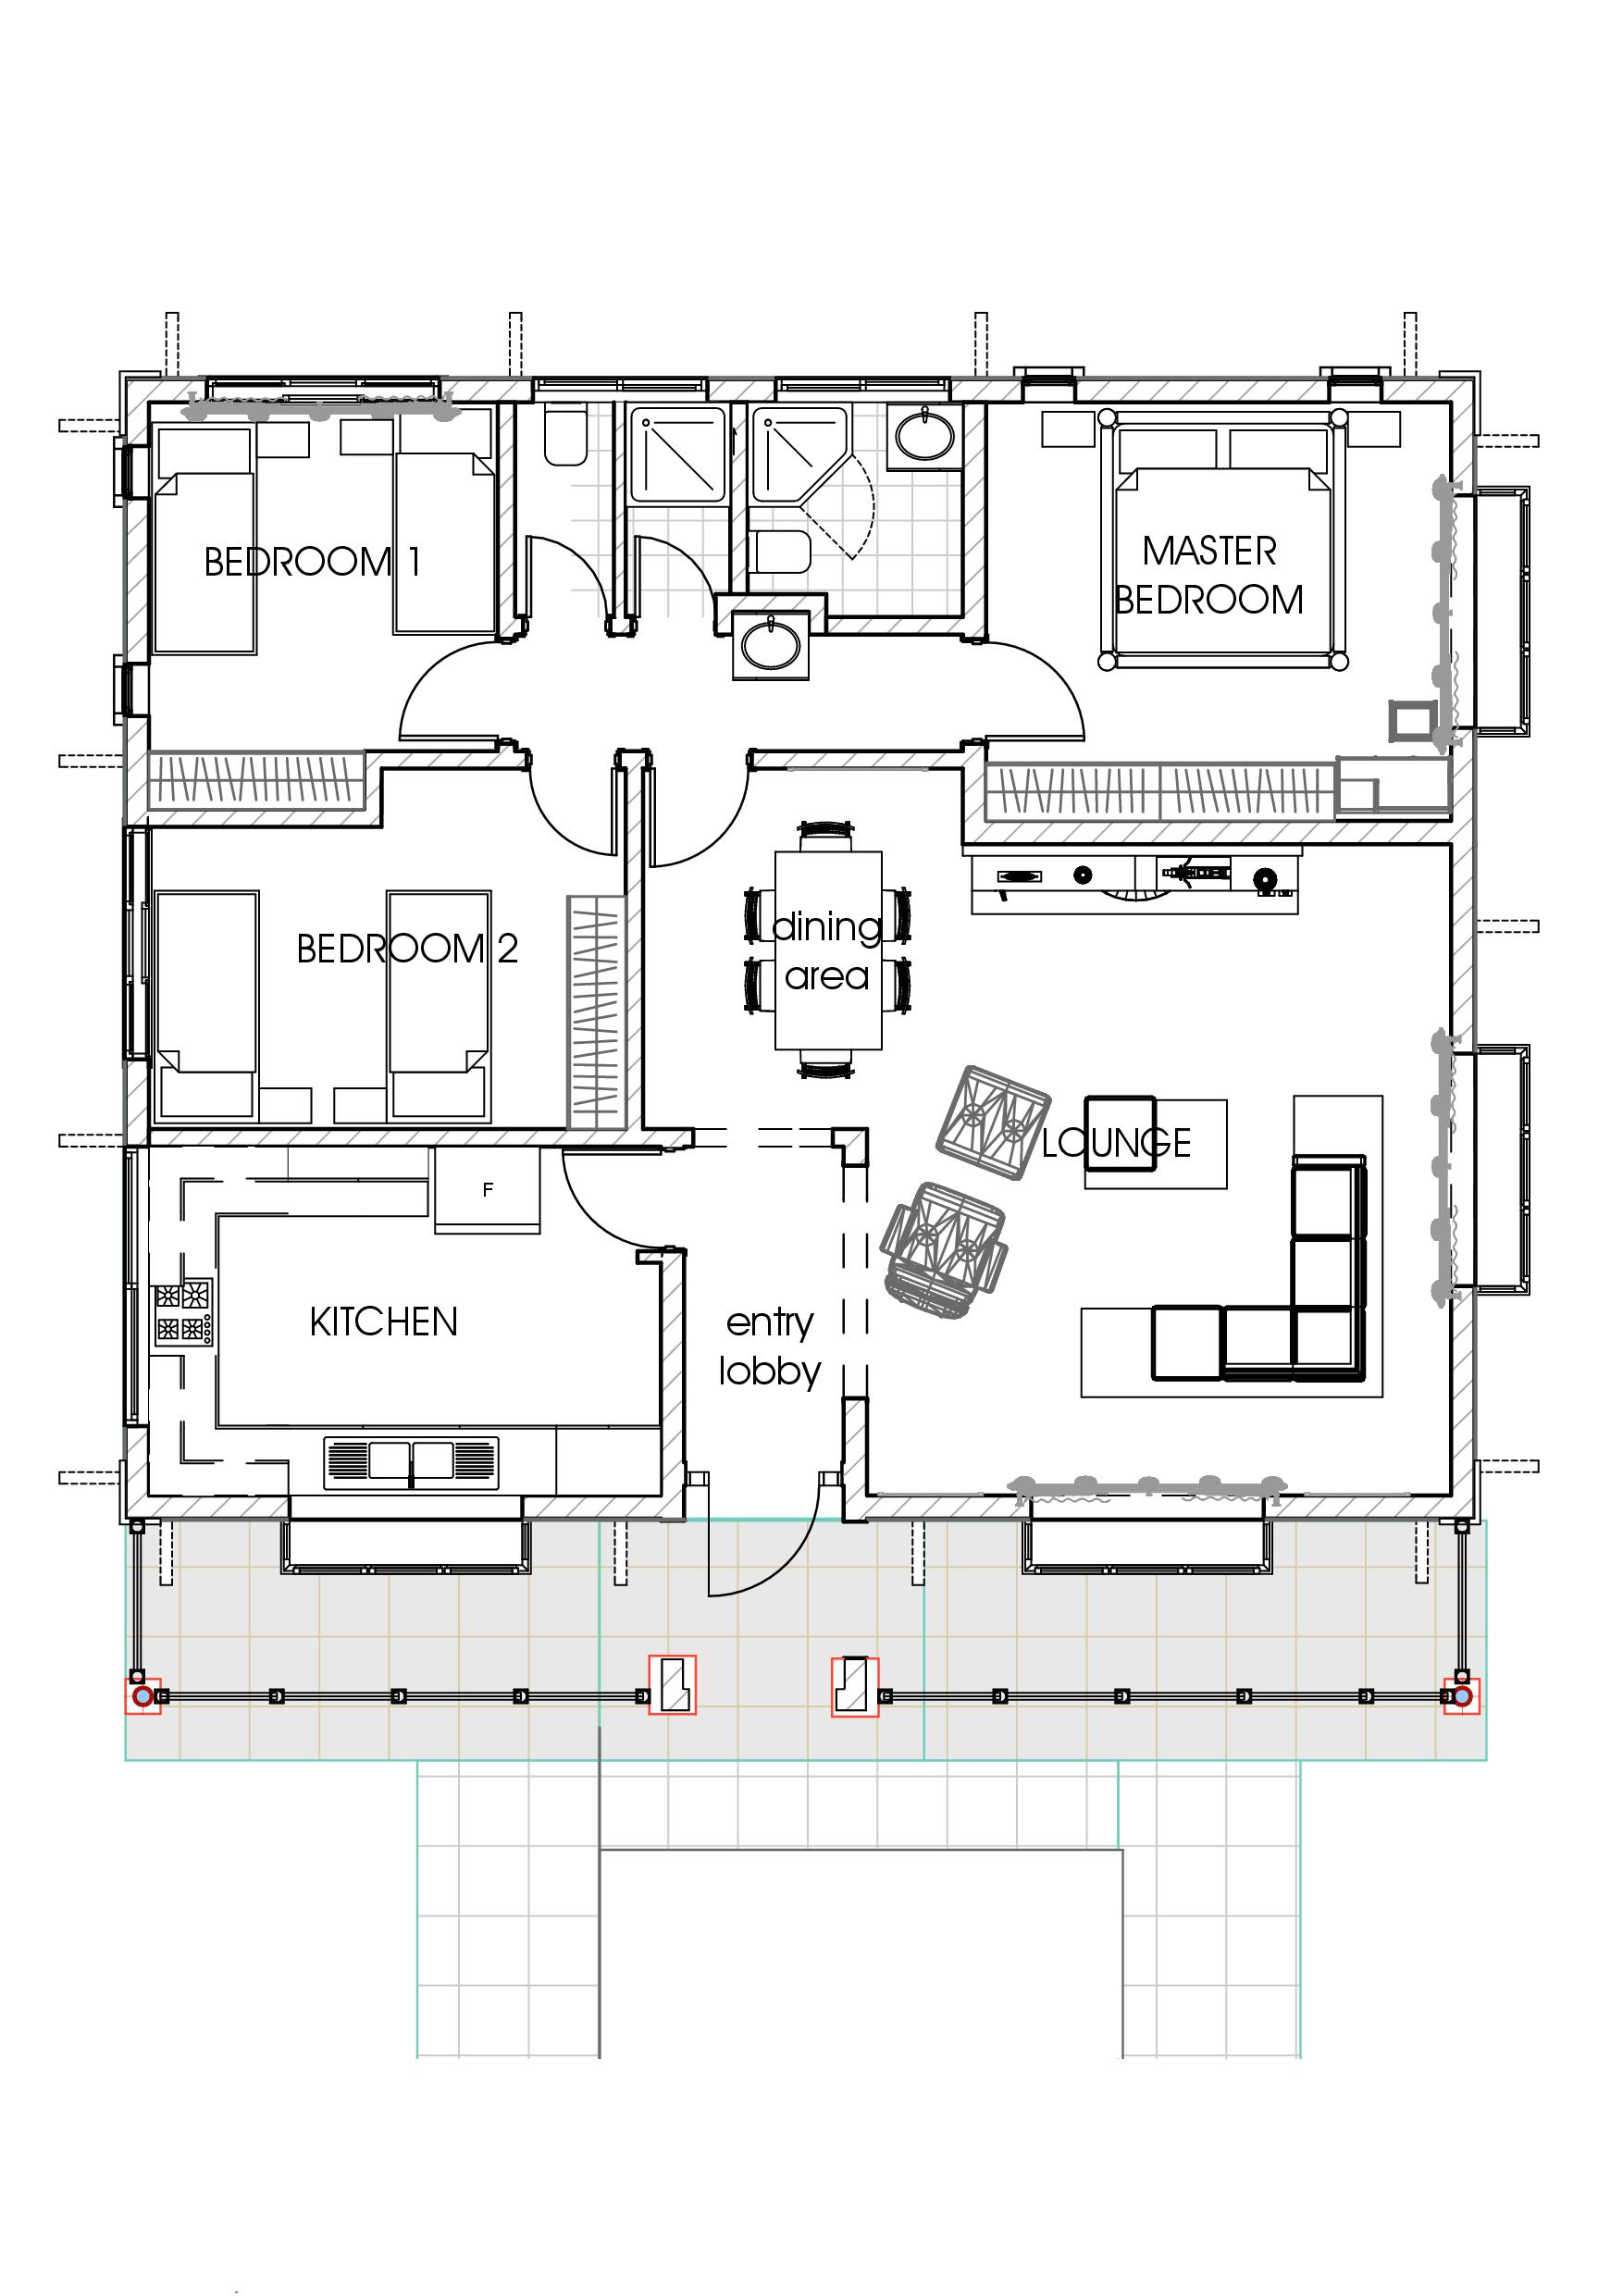 Bungalow Dining Room House Plans In Kenya 3 Bedroom Bungalow House Plan